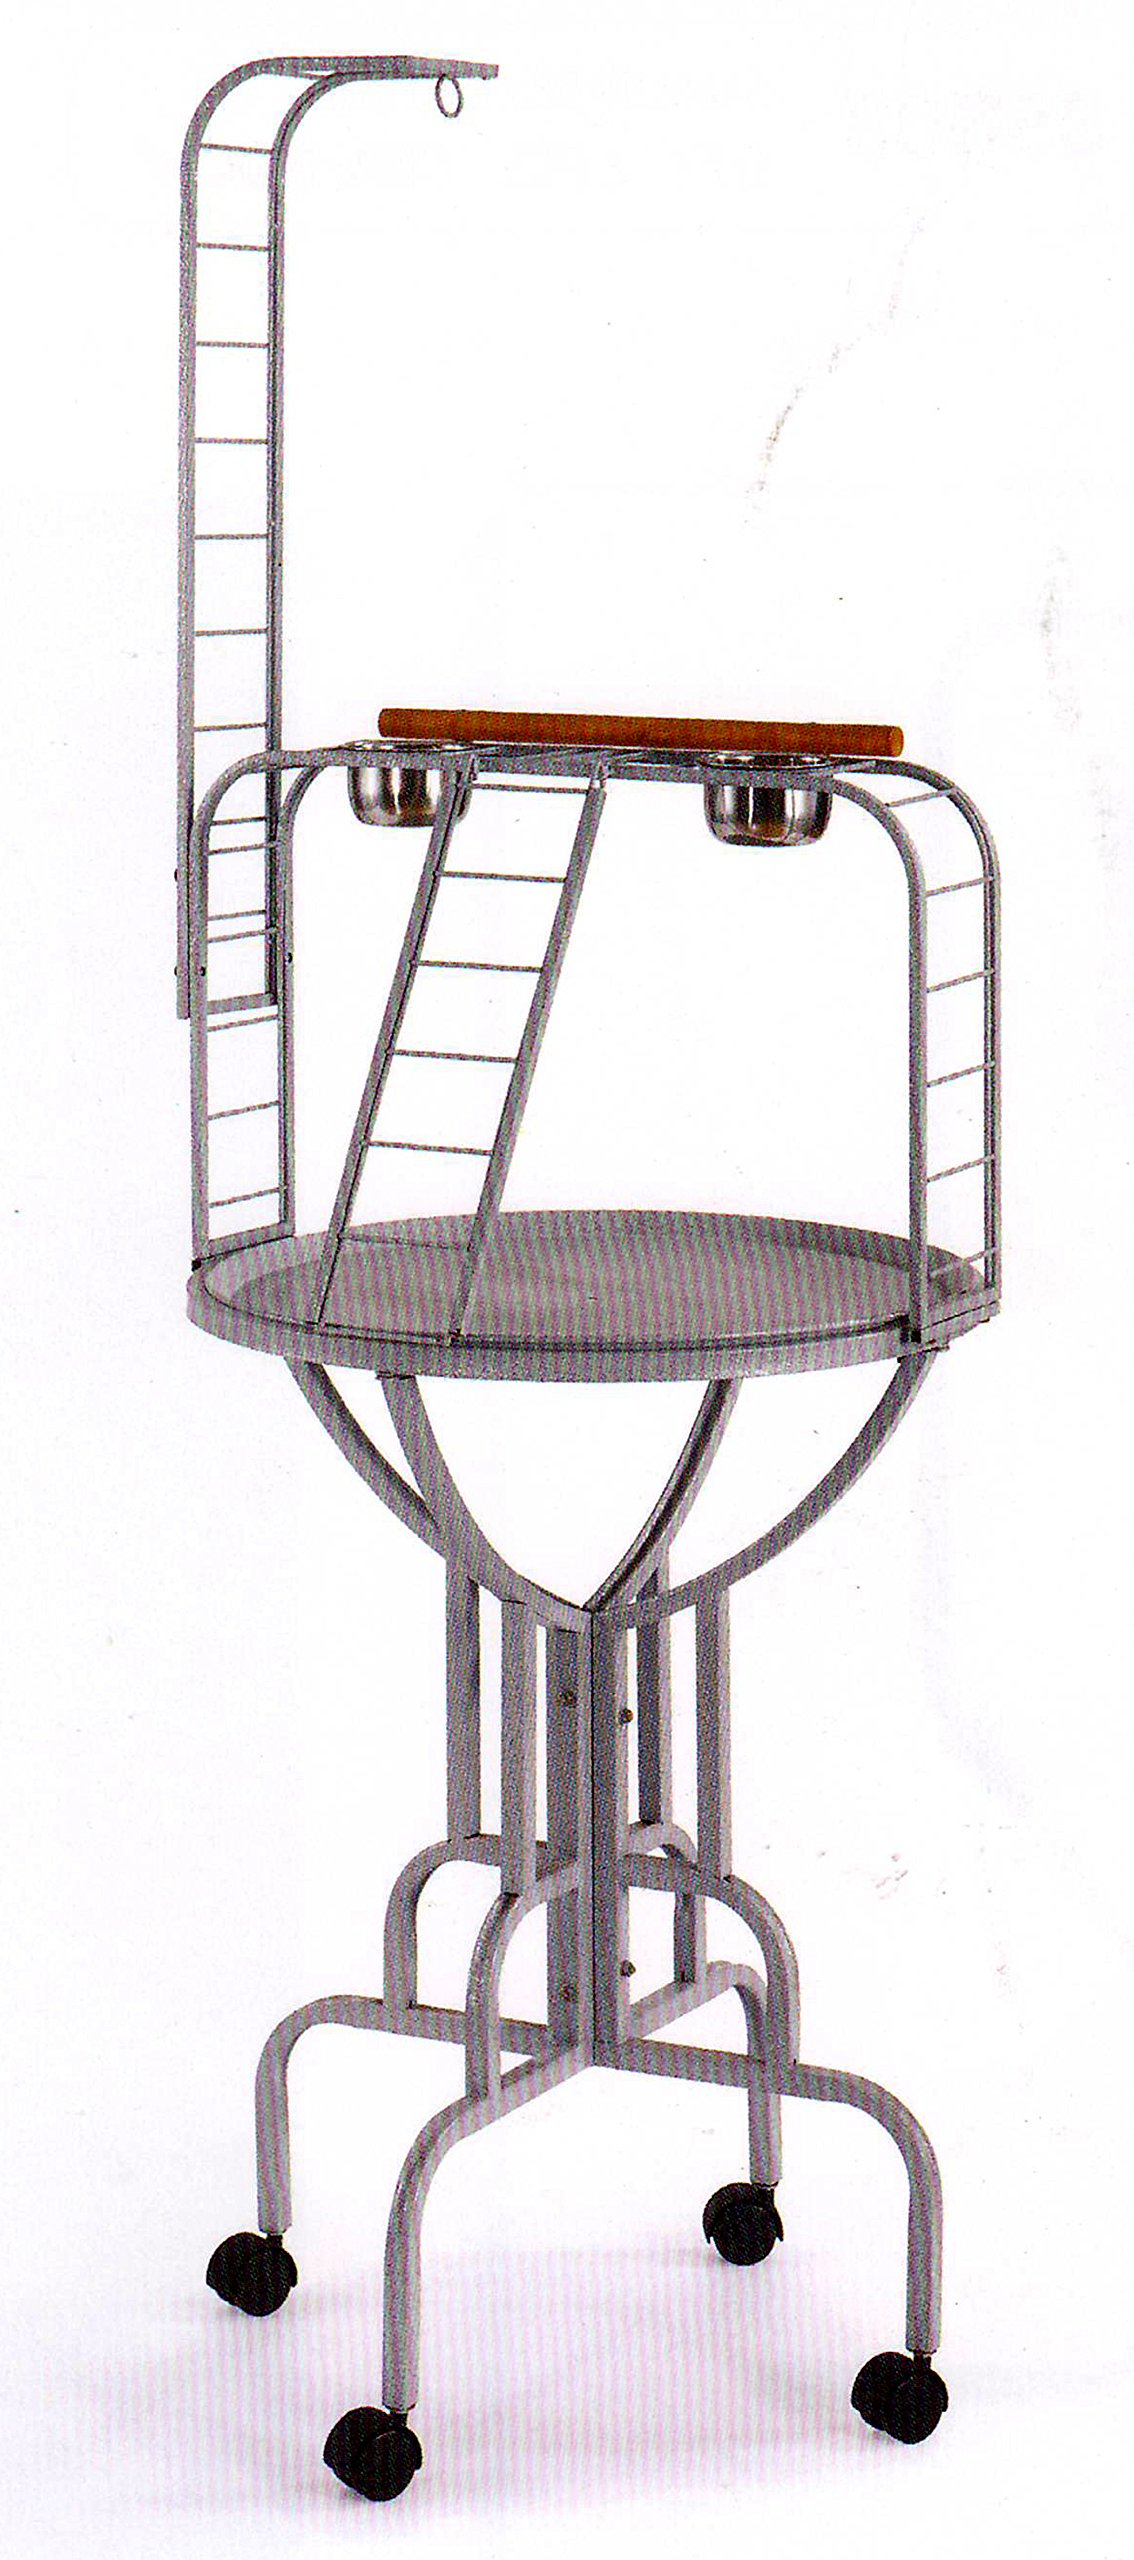 NEW Wrought Iron Parrot Bird Play Gym Ground Stand With Metal LadderBlack Vein by Mcage